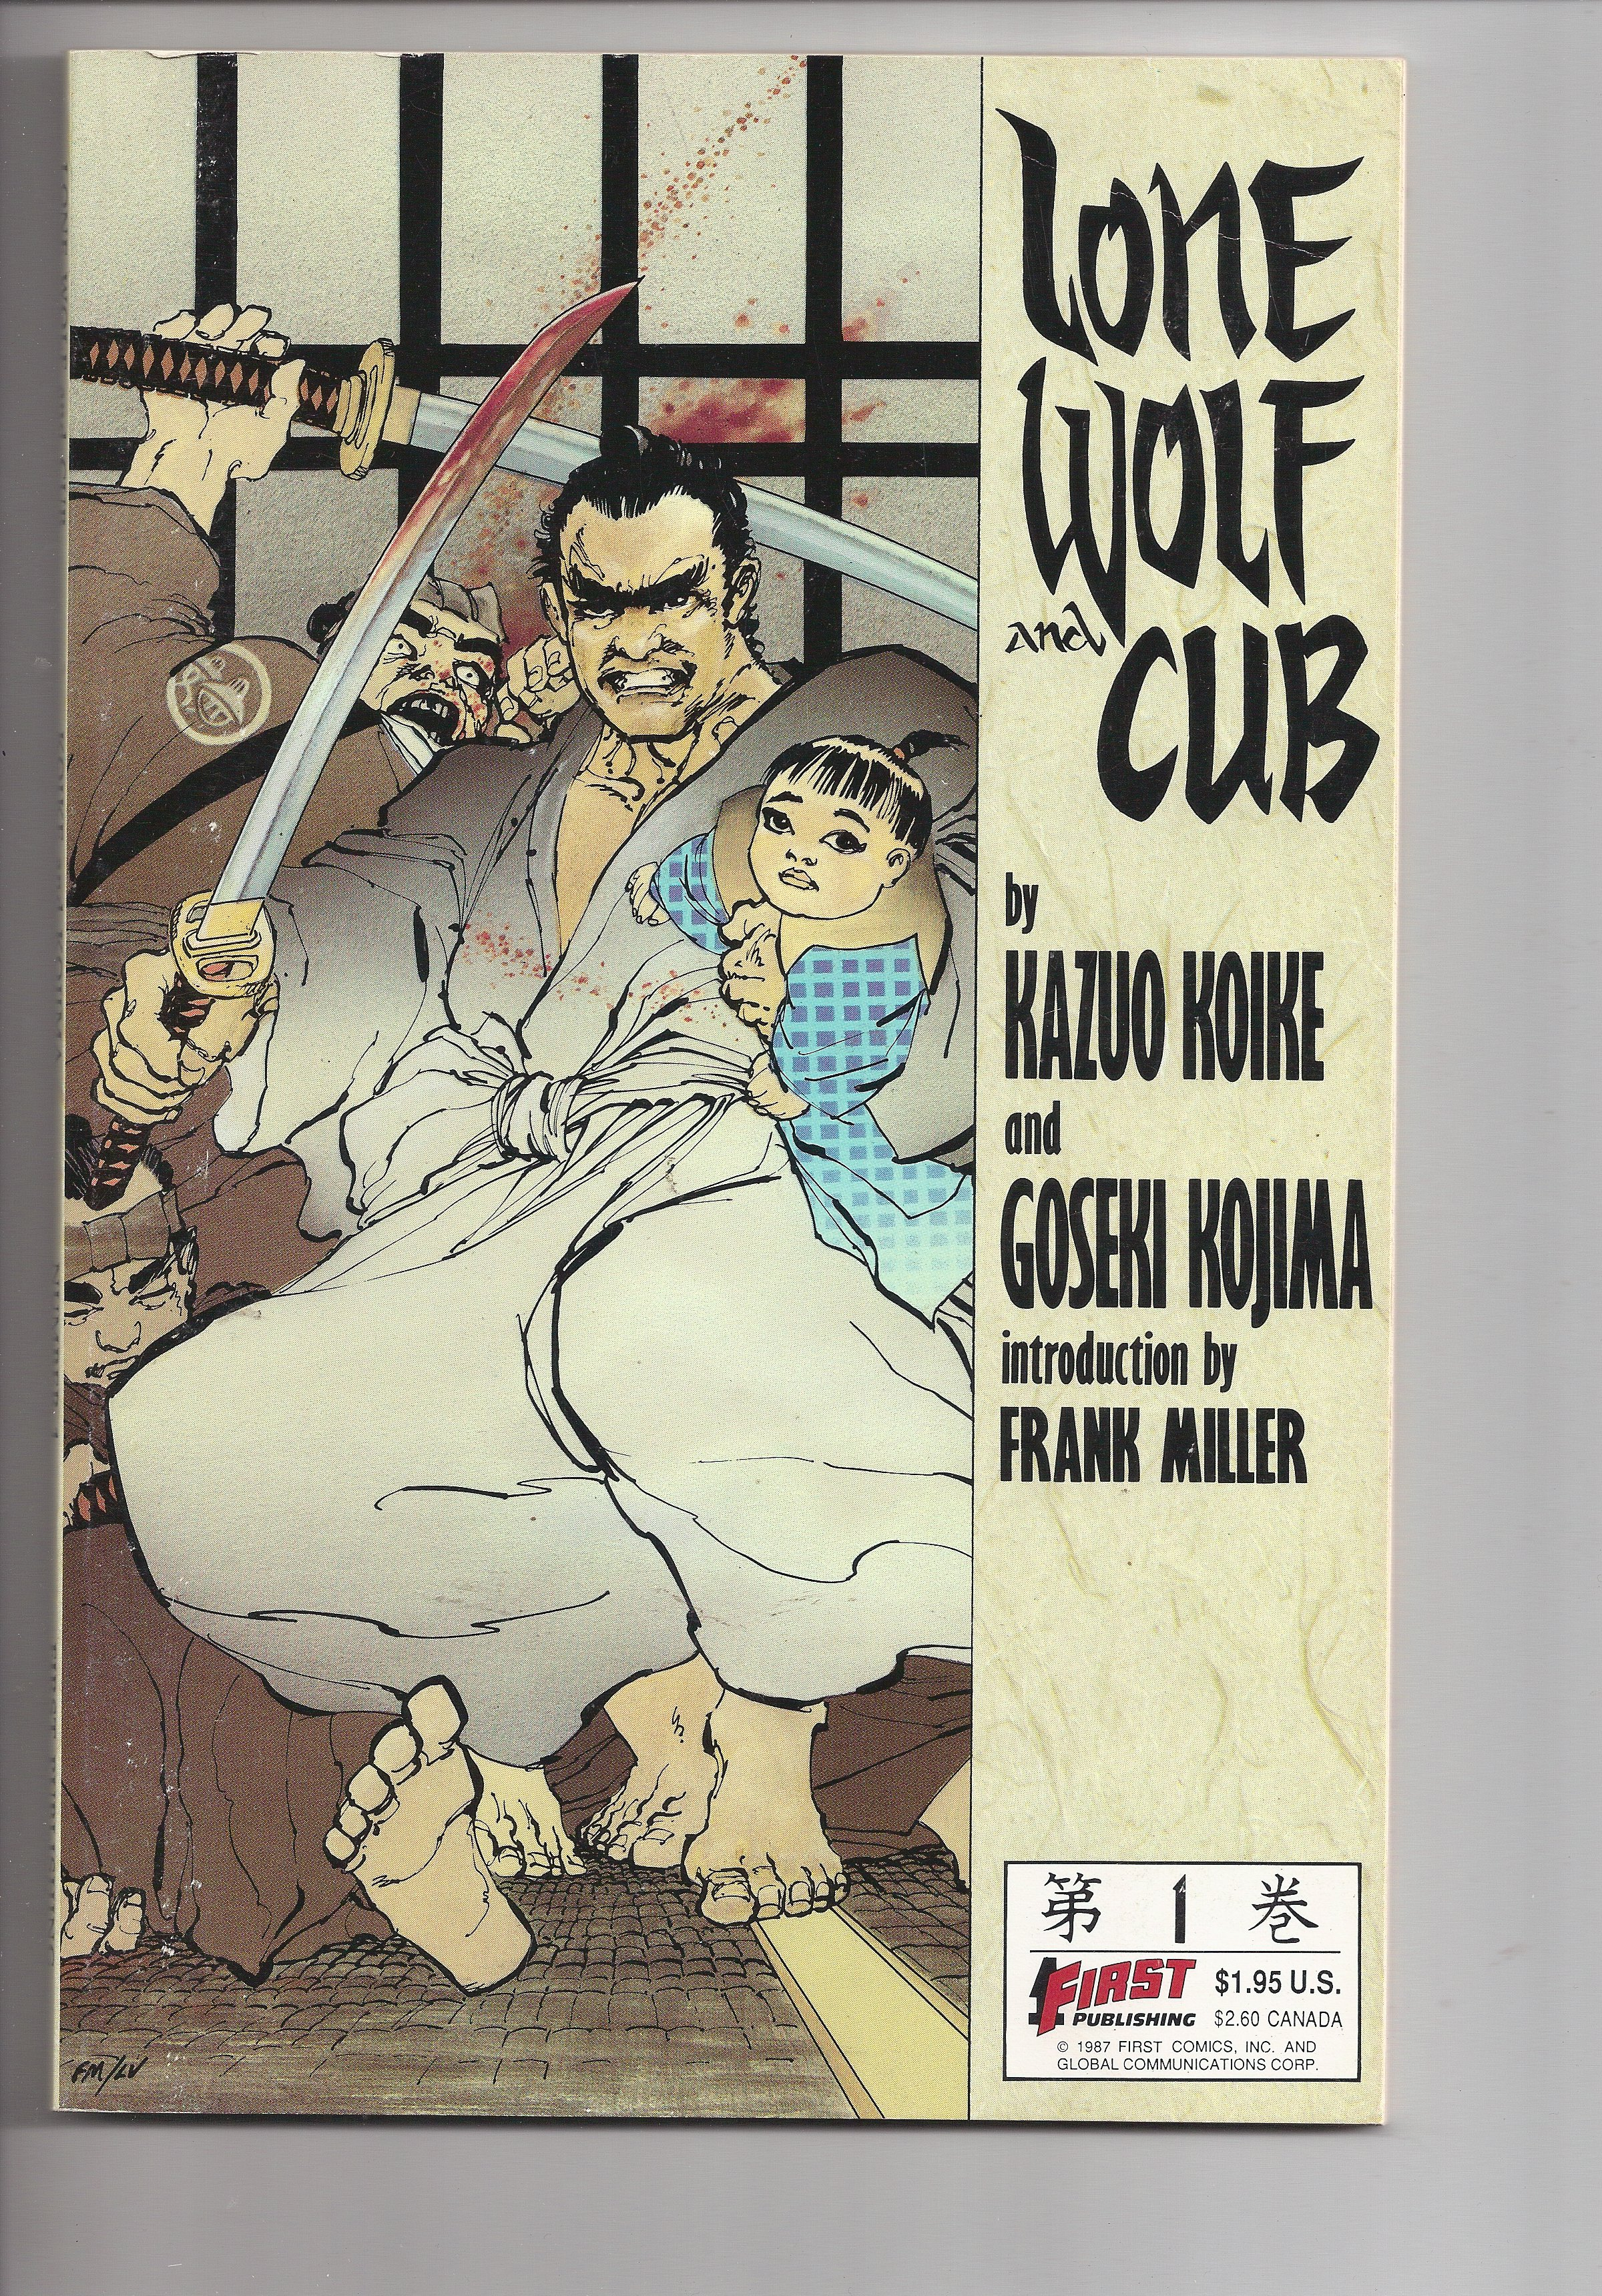 Lone Wolf and Cub # 1 from The Comics4Kids INC comic book reading Library Special Collections